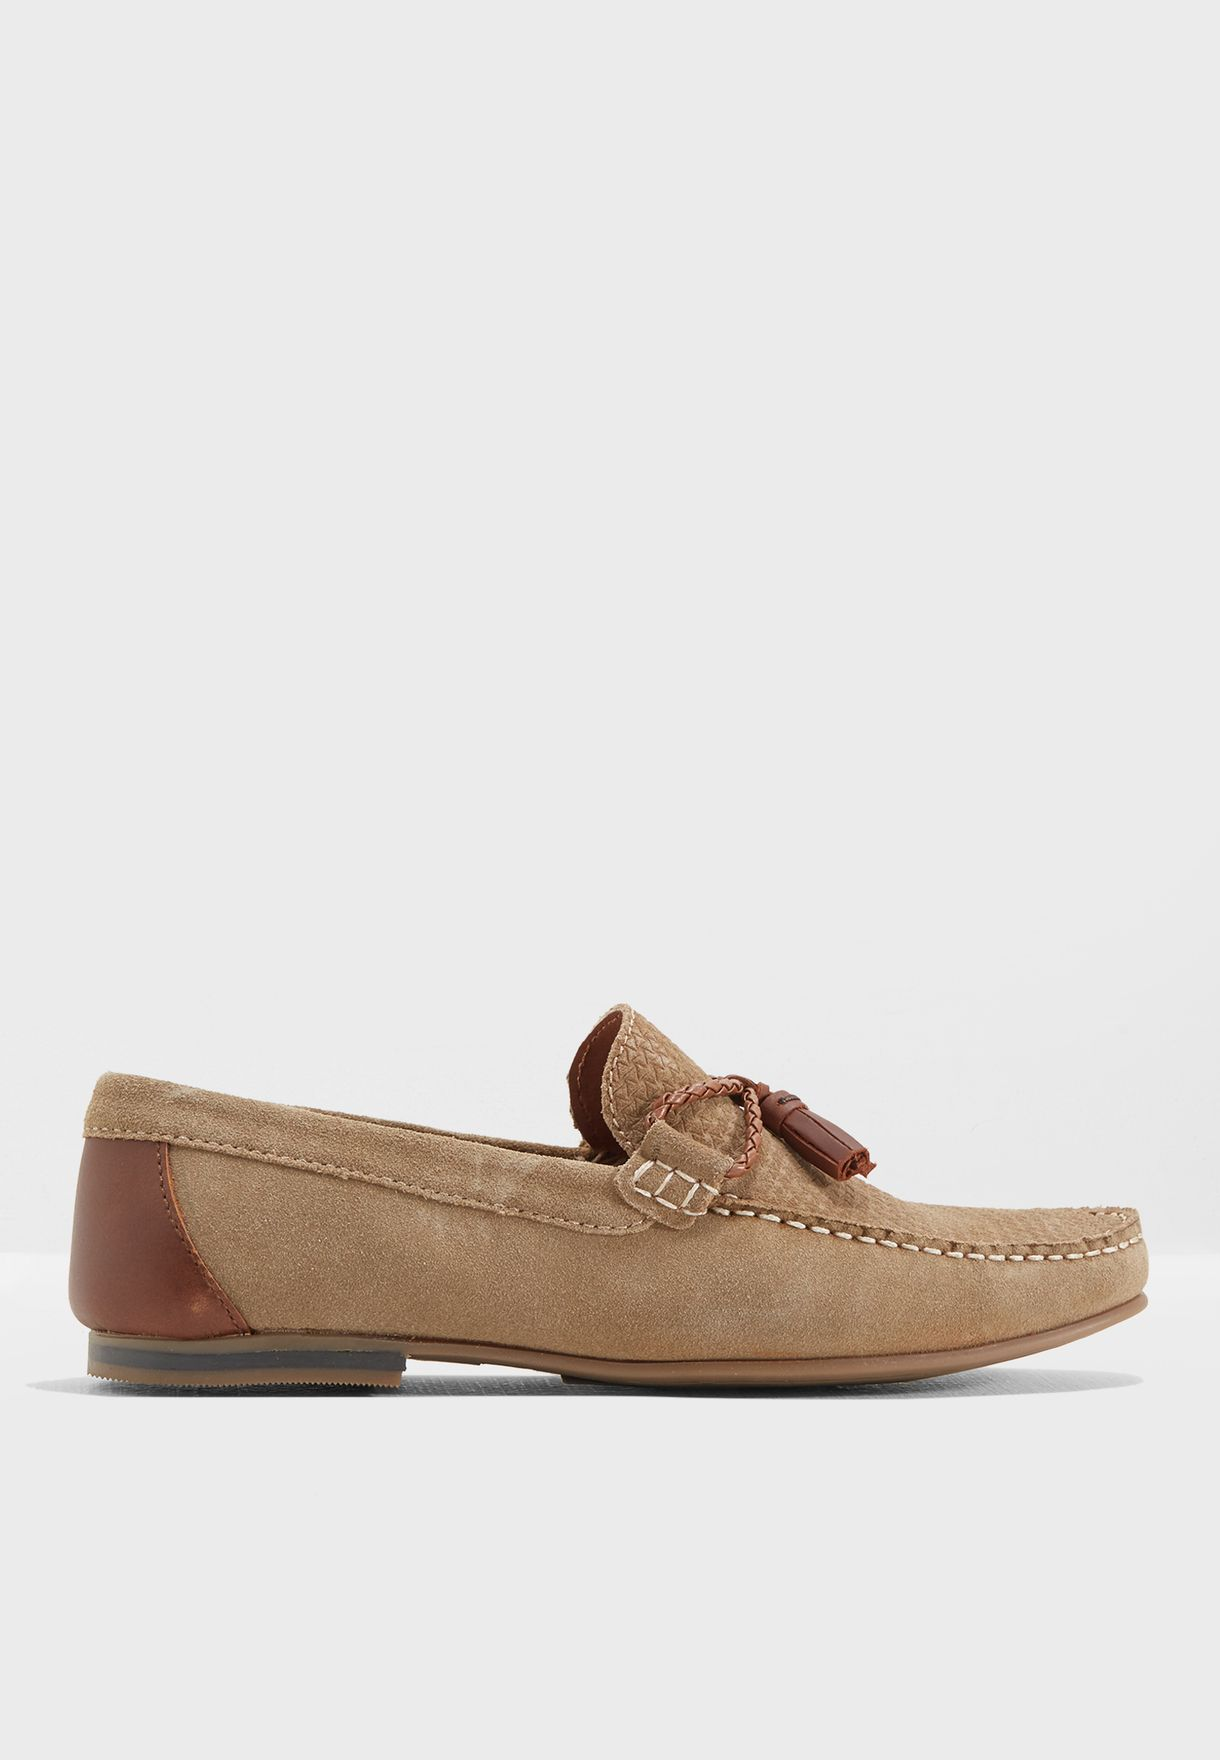 9b617ea5685 Shop Topman browns Embroidered Loafers 76K93LSND for Men in Bahrain ...